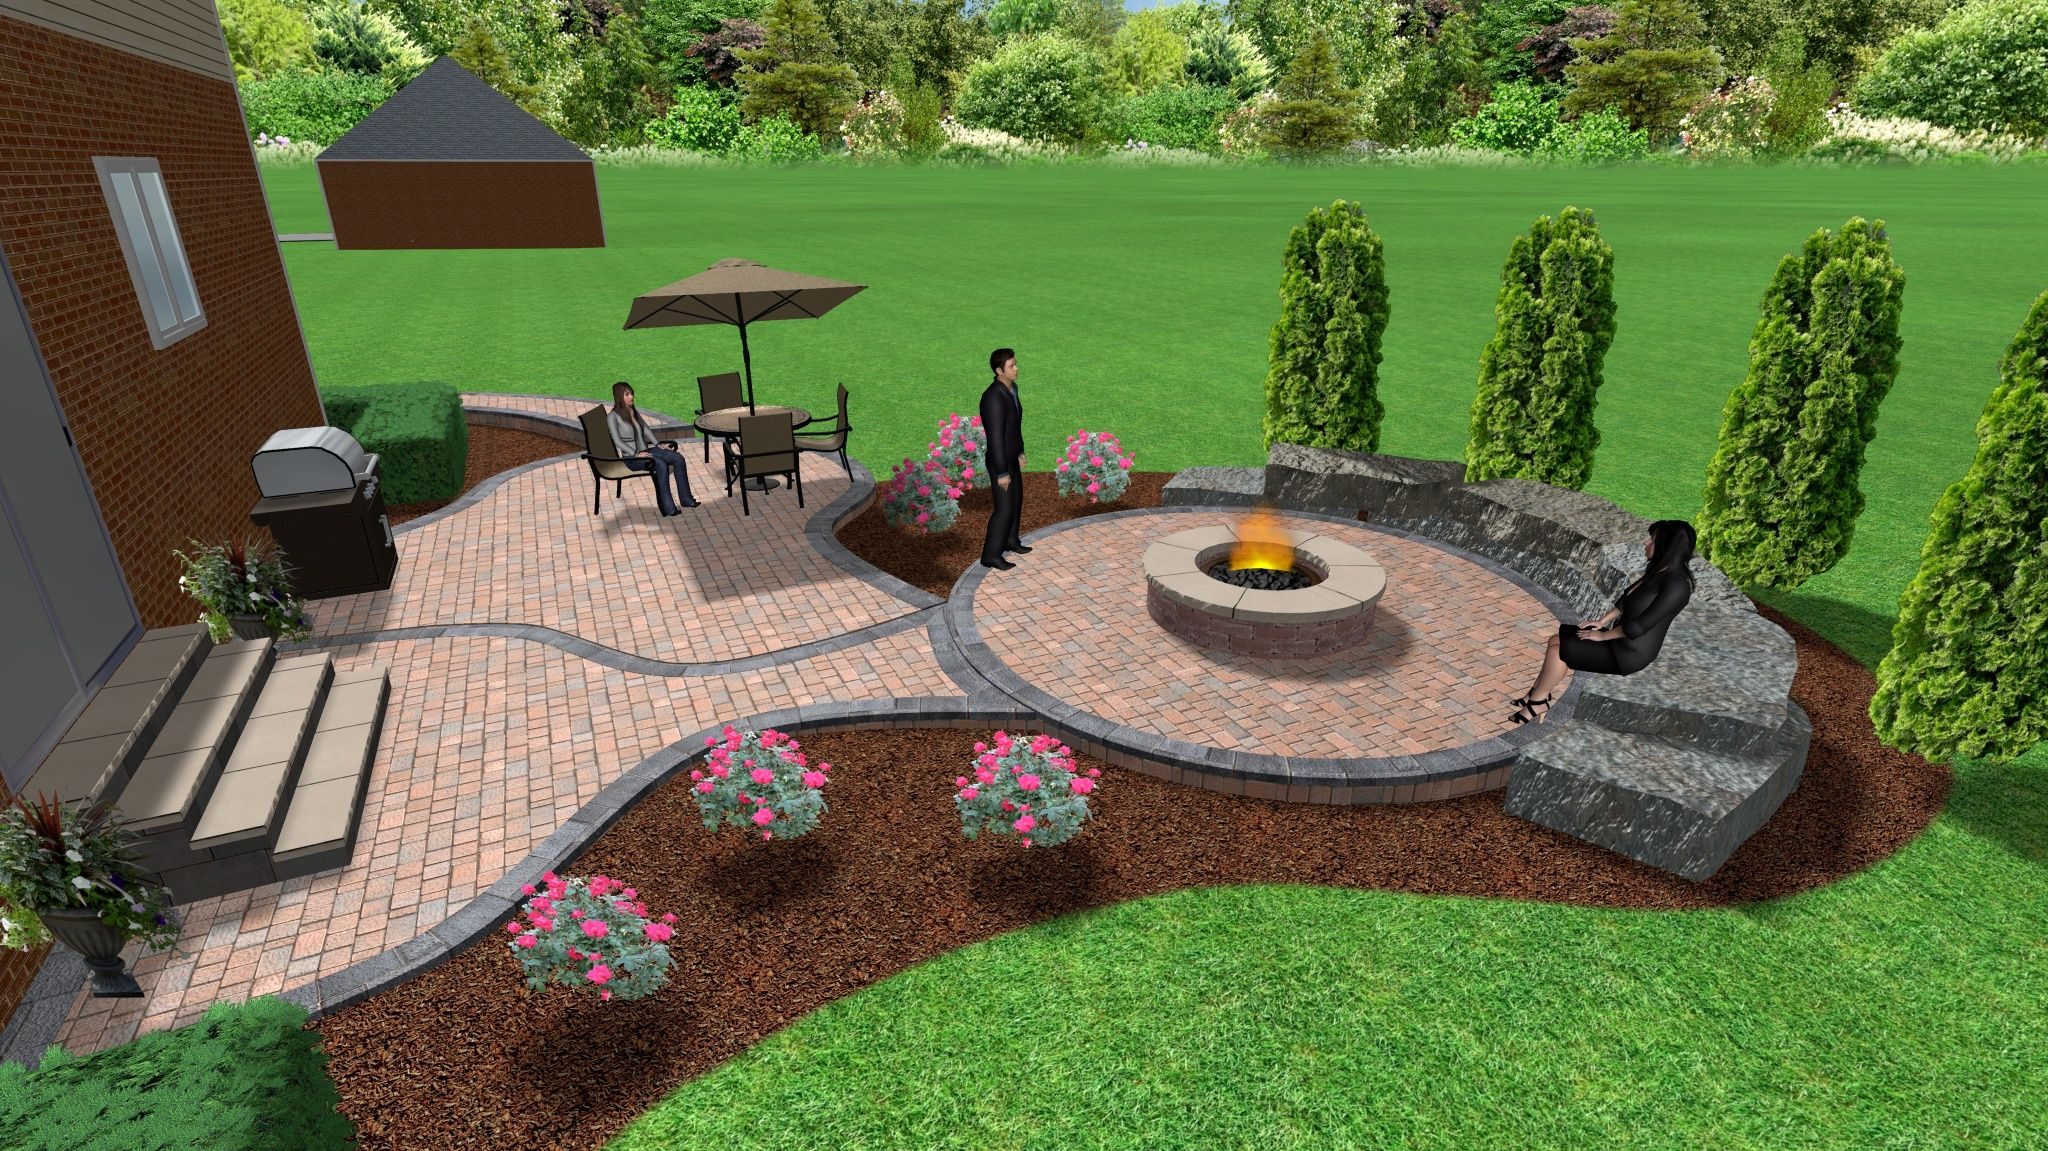 Brick paver patio and fire pit | Fire pit landscaping ... on Pavers Patio With Fire Pit id=58575